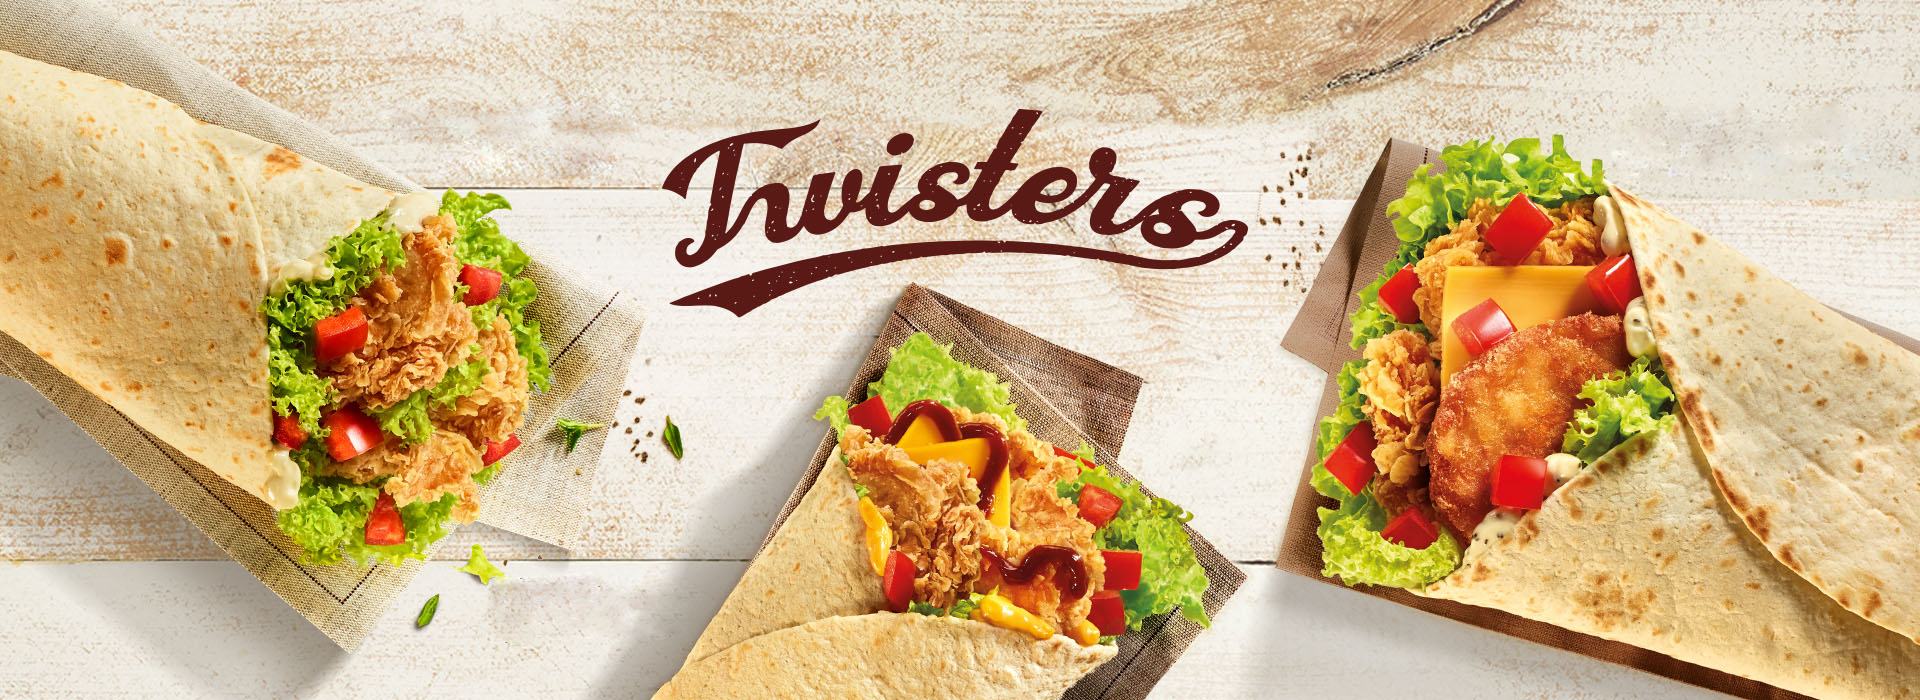 kfc_srb_twisters_slider